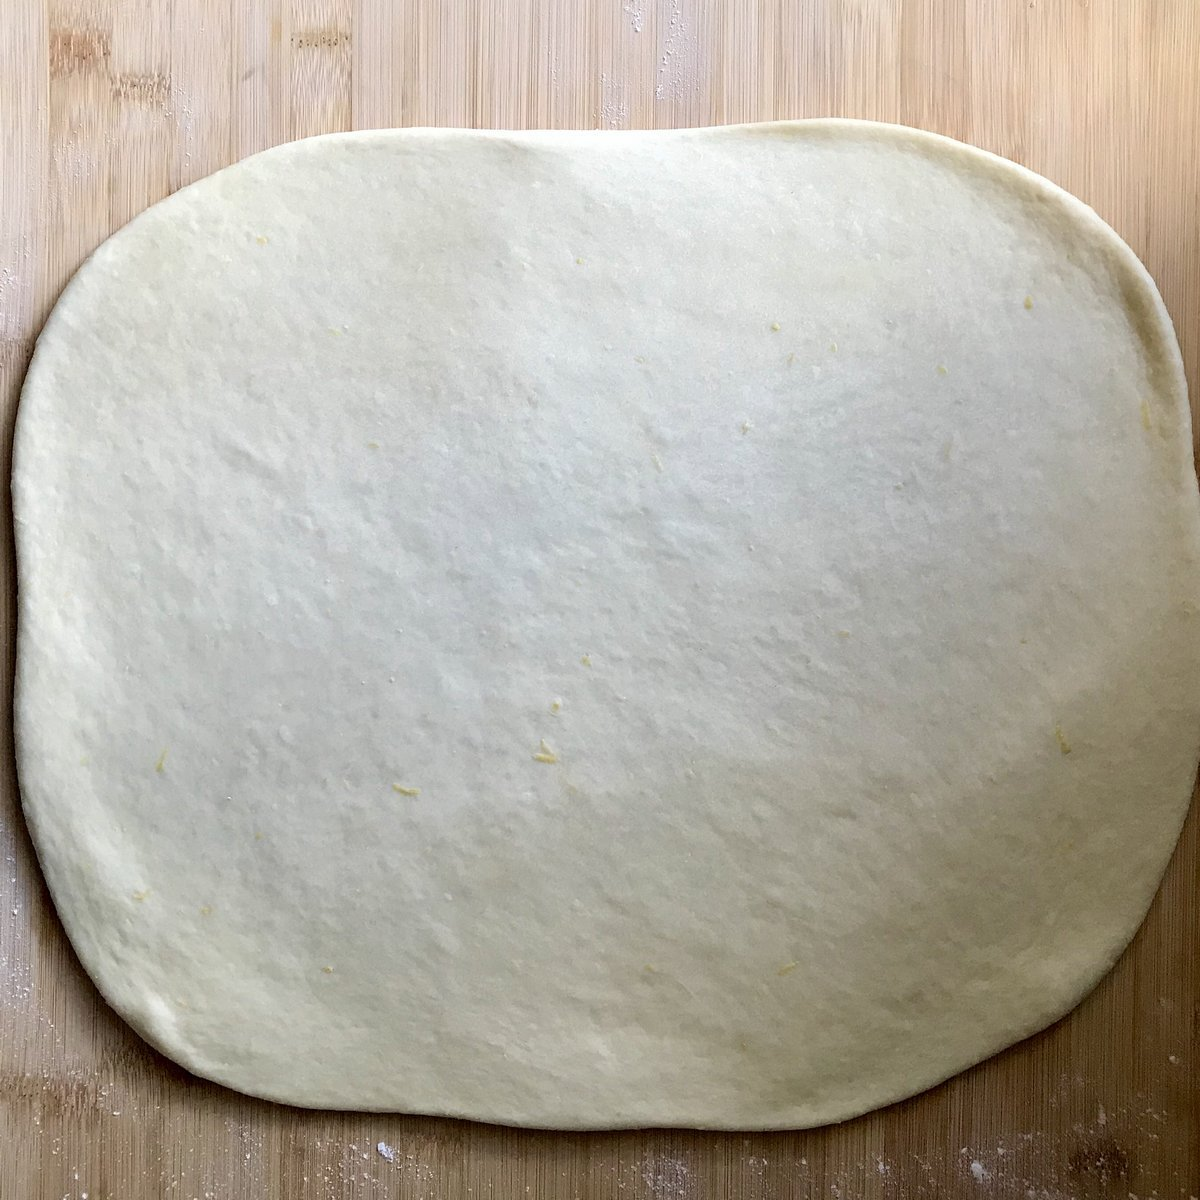 Stretched out dough on a wooden board.